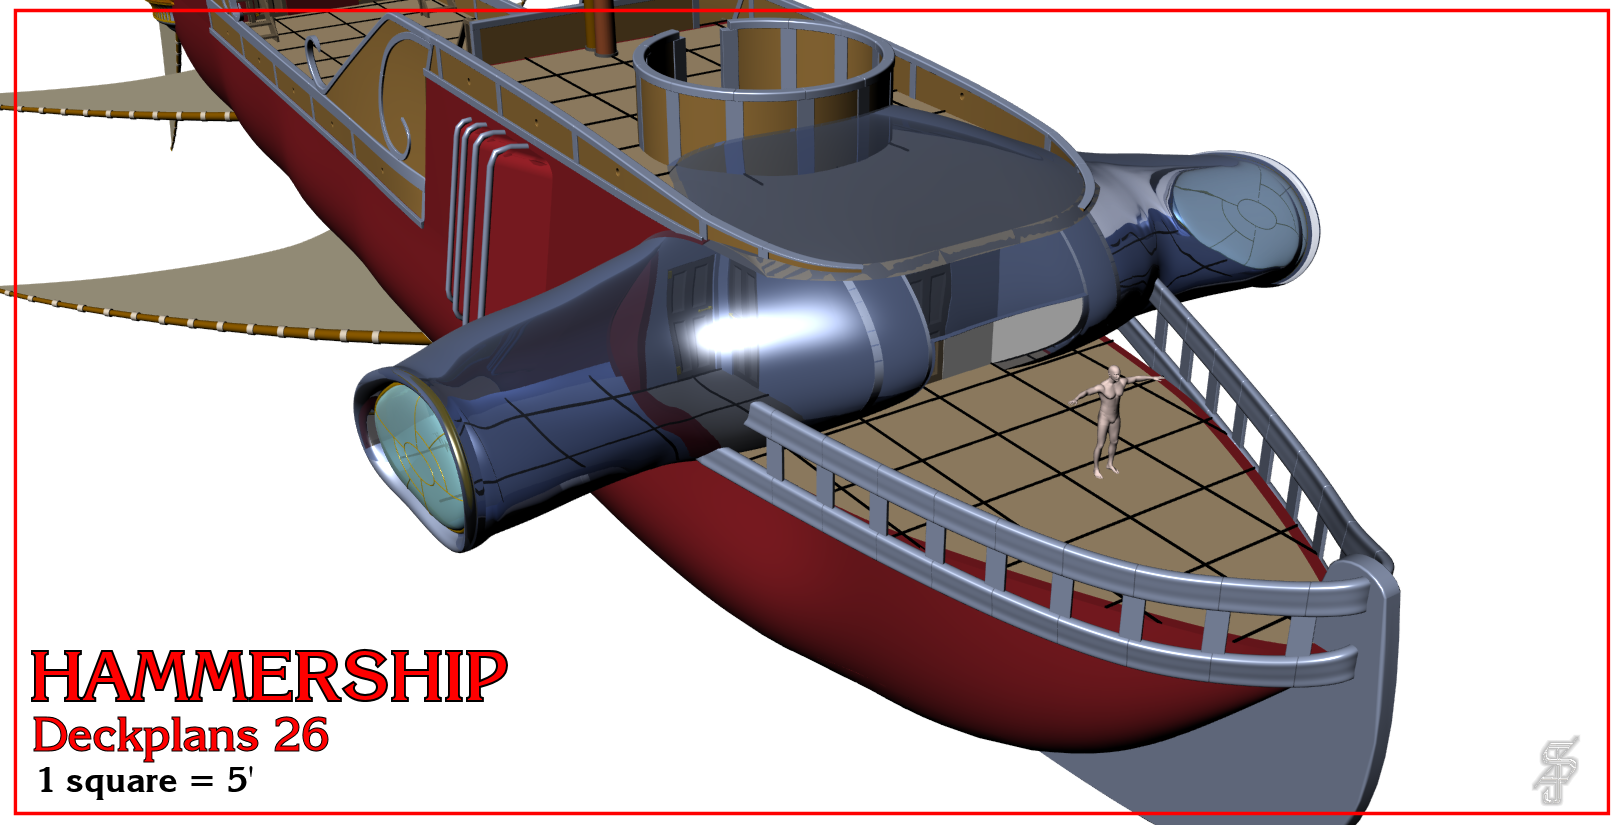 hammership_layout_26.png